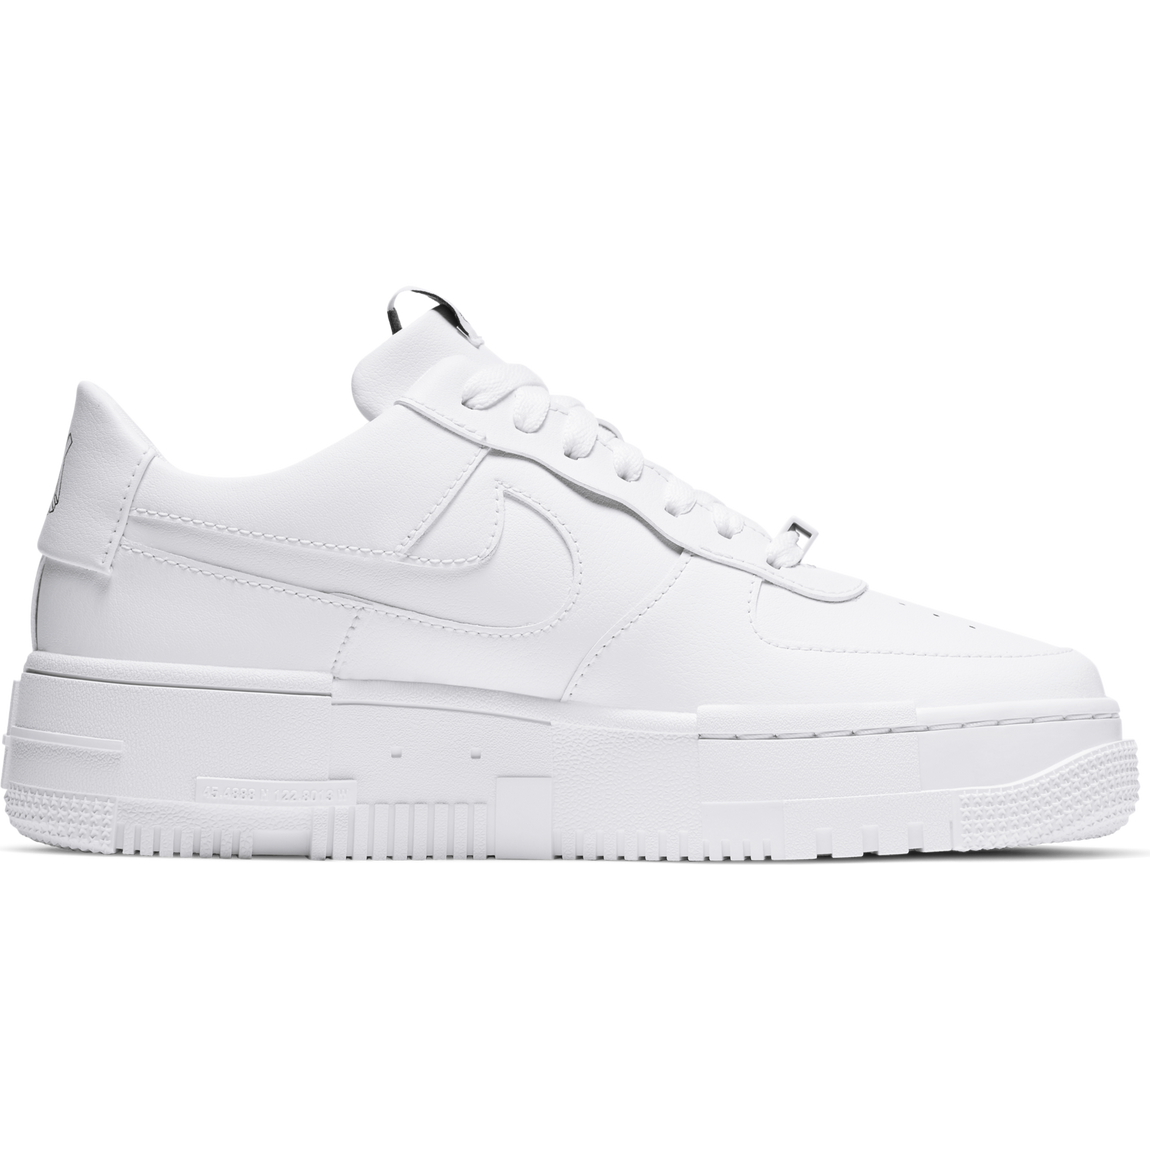 Nike Women's Air Force 1 Pixel (White/White) - Nike Women's Air Force 1 Pixel (White/White) -